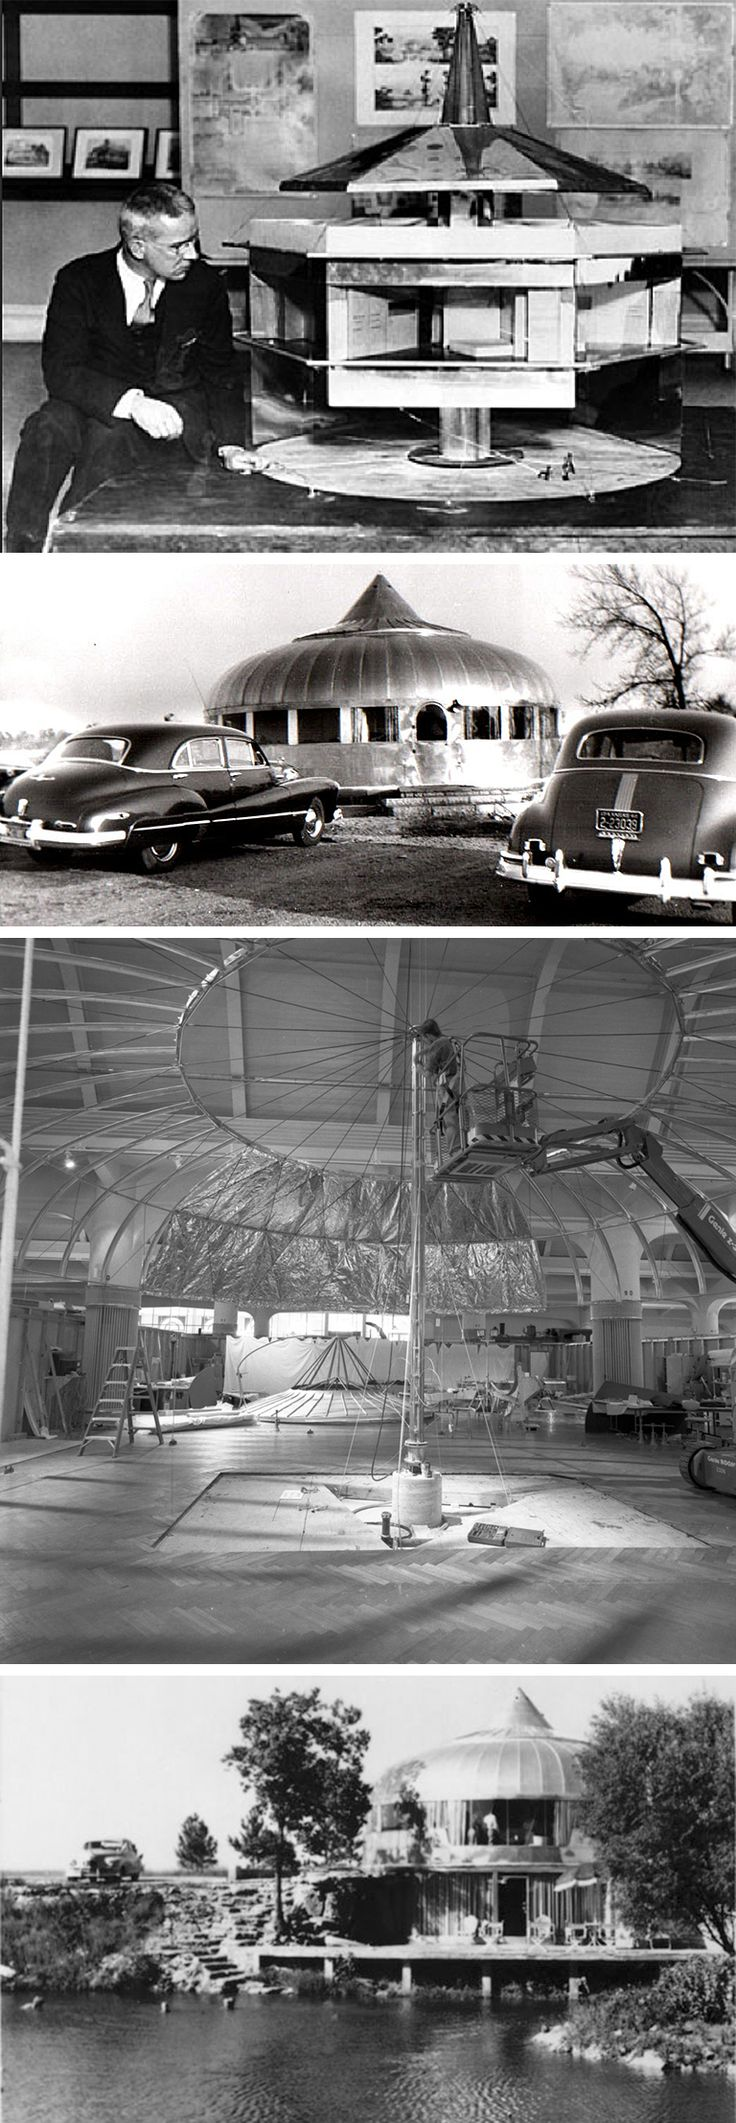 "R. Buckminster Fuller & his Dymaxion house: a self-contained marvel, factory assembled using aluminum components and intended for air delivery to any location on the globe. Two Dymaxion houses were prototyped – one indoor (the ""Barwise"" house) and one outdoor (the ""Danbury"" house). No Dymaxion house built according to Fuller's intentions was ever constructed and lived in."